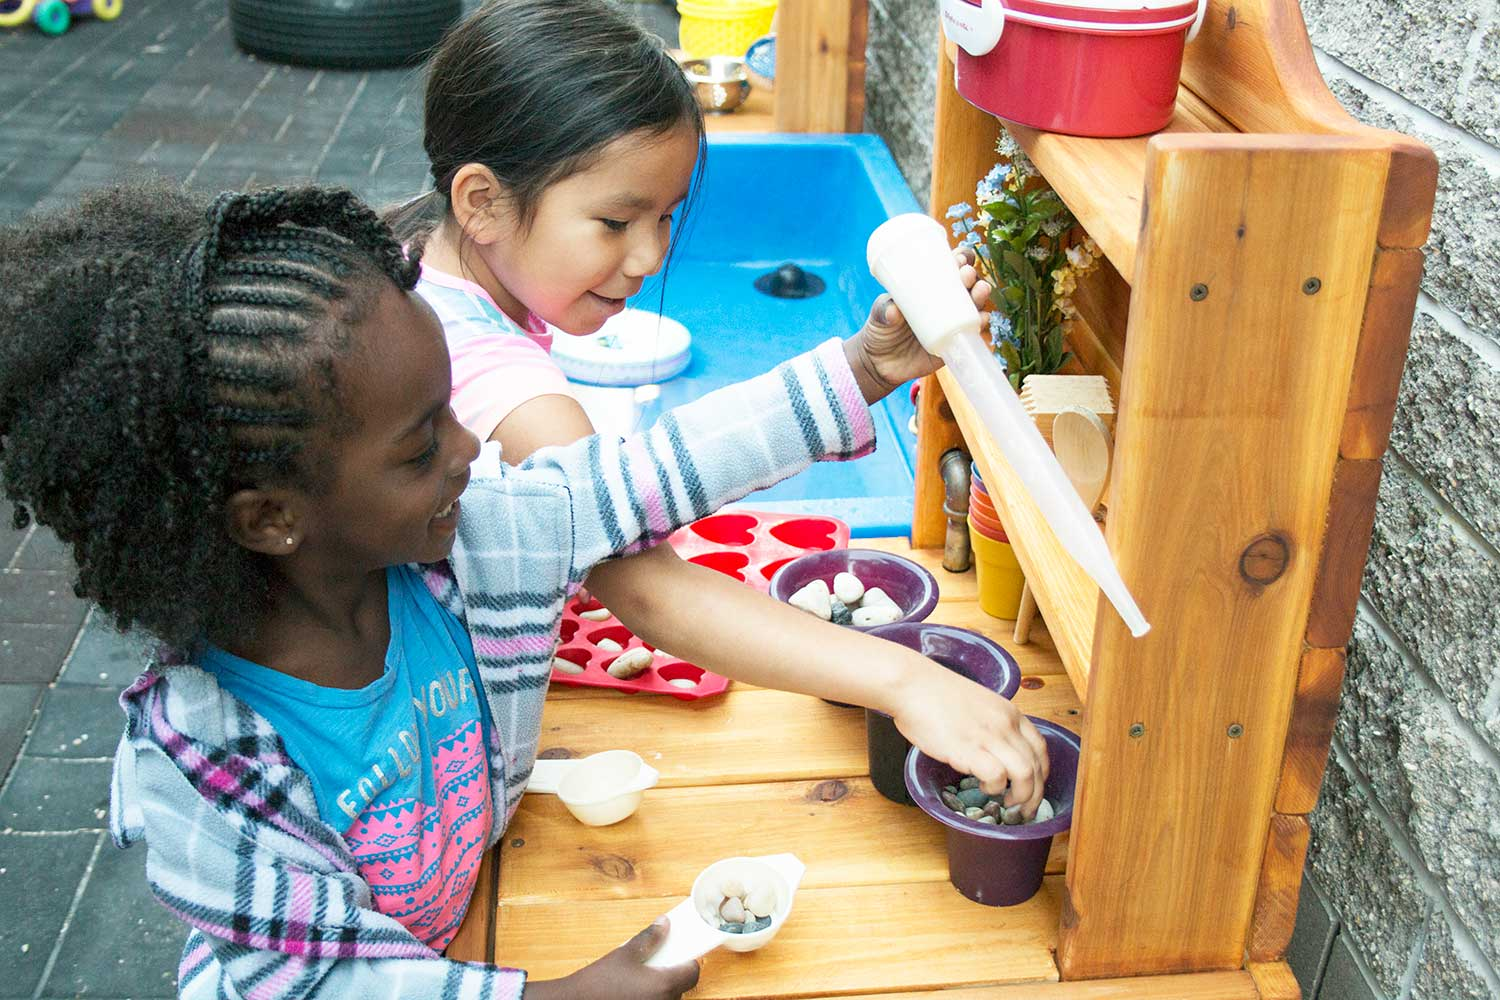 Kids start cooking up fun and creativity with their new mud kitchen at Thrive Child Care.